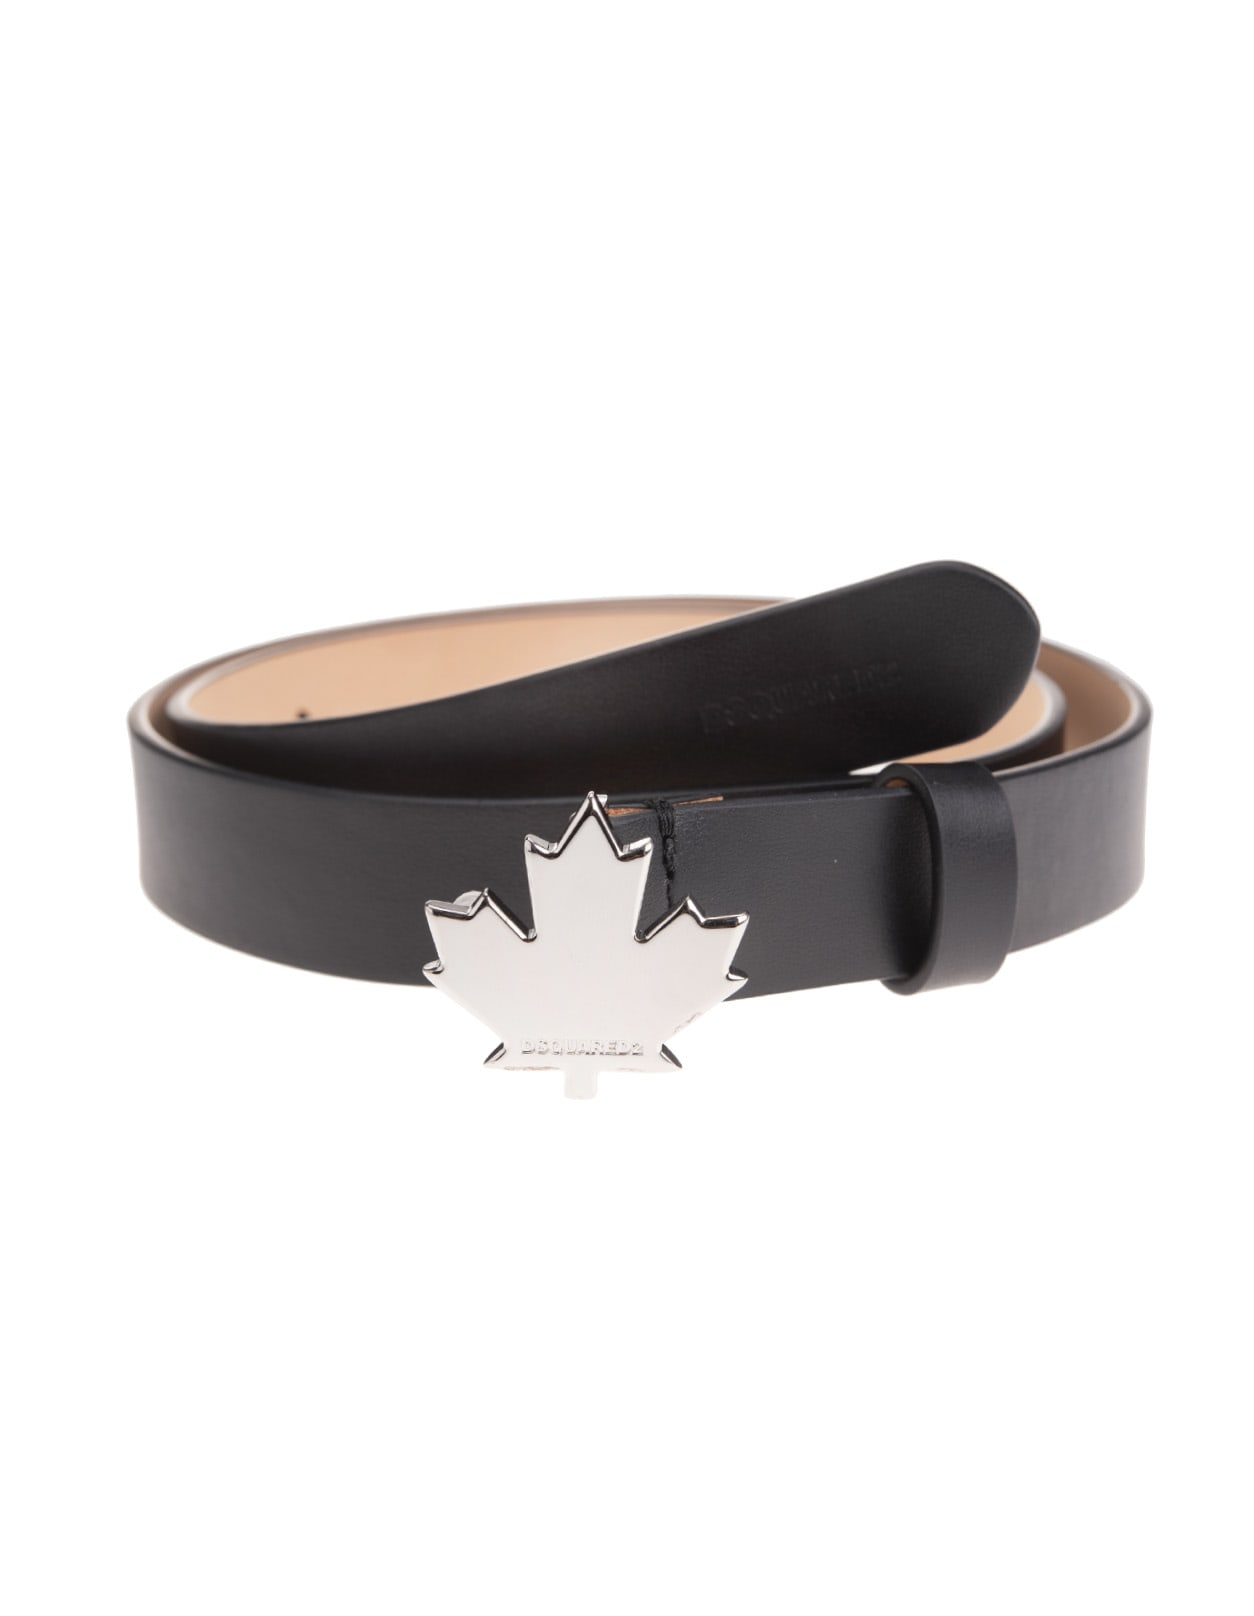 Black Patent Woman Belt With Maple Leaf